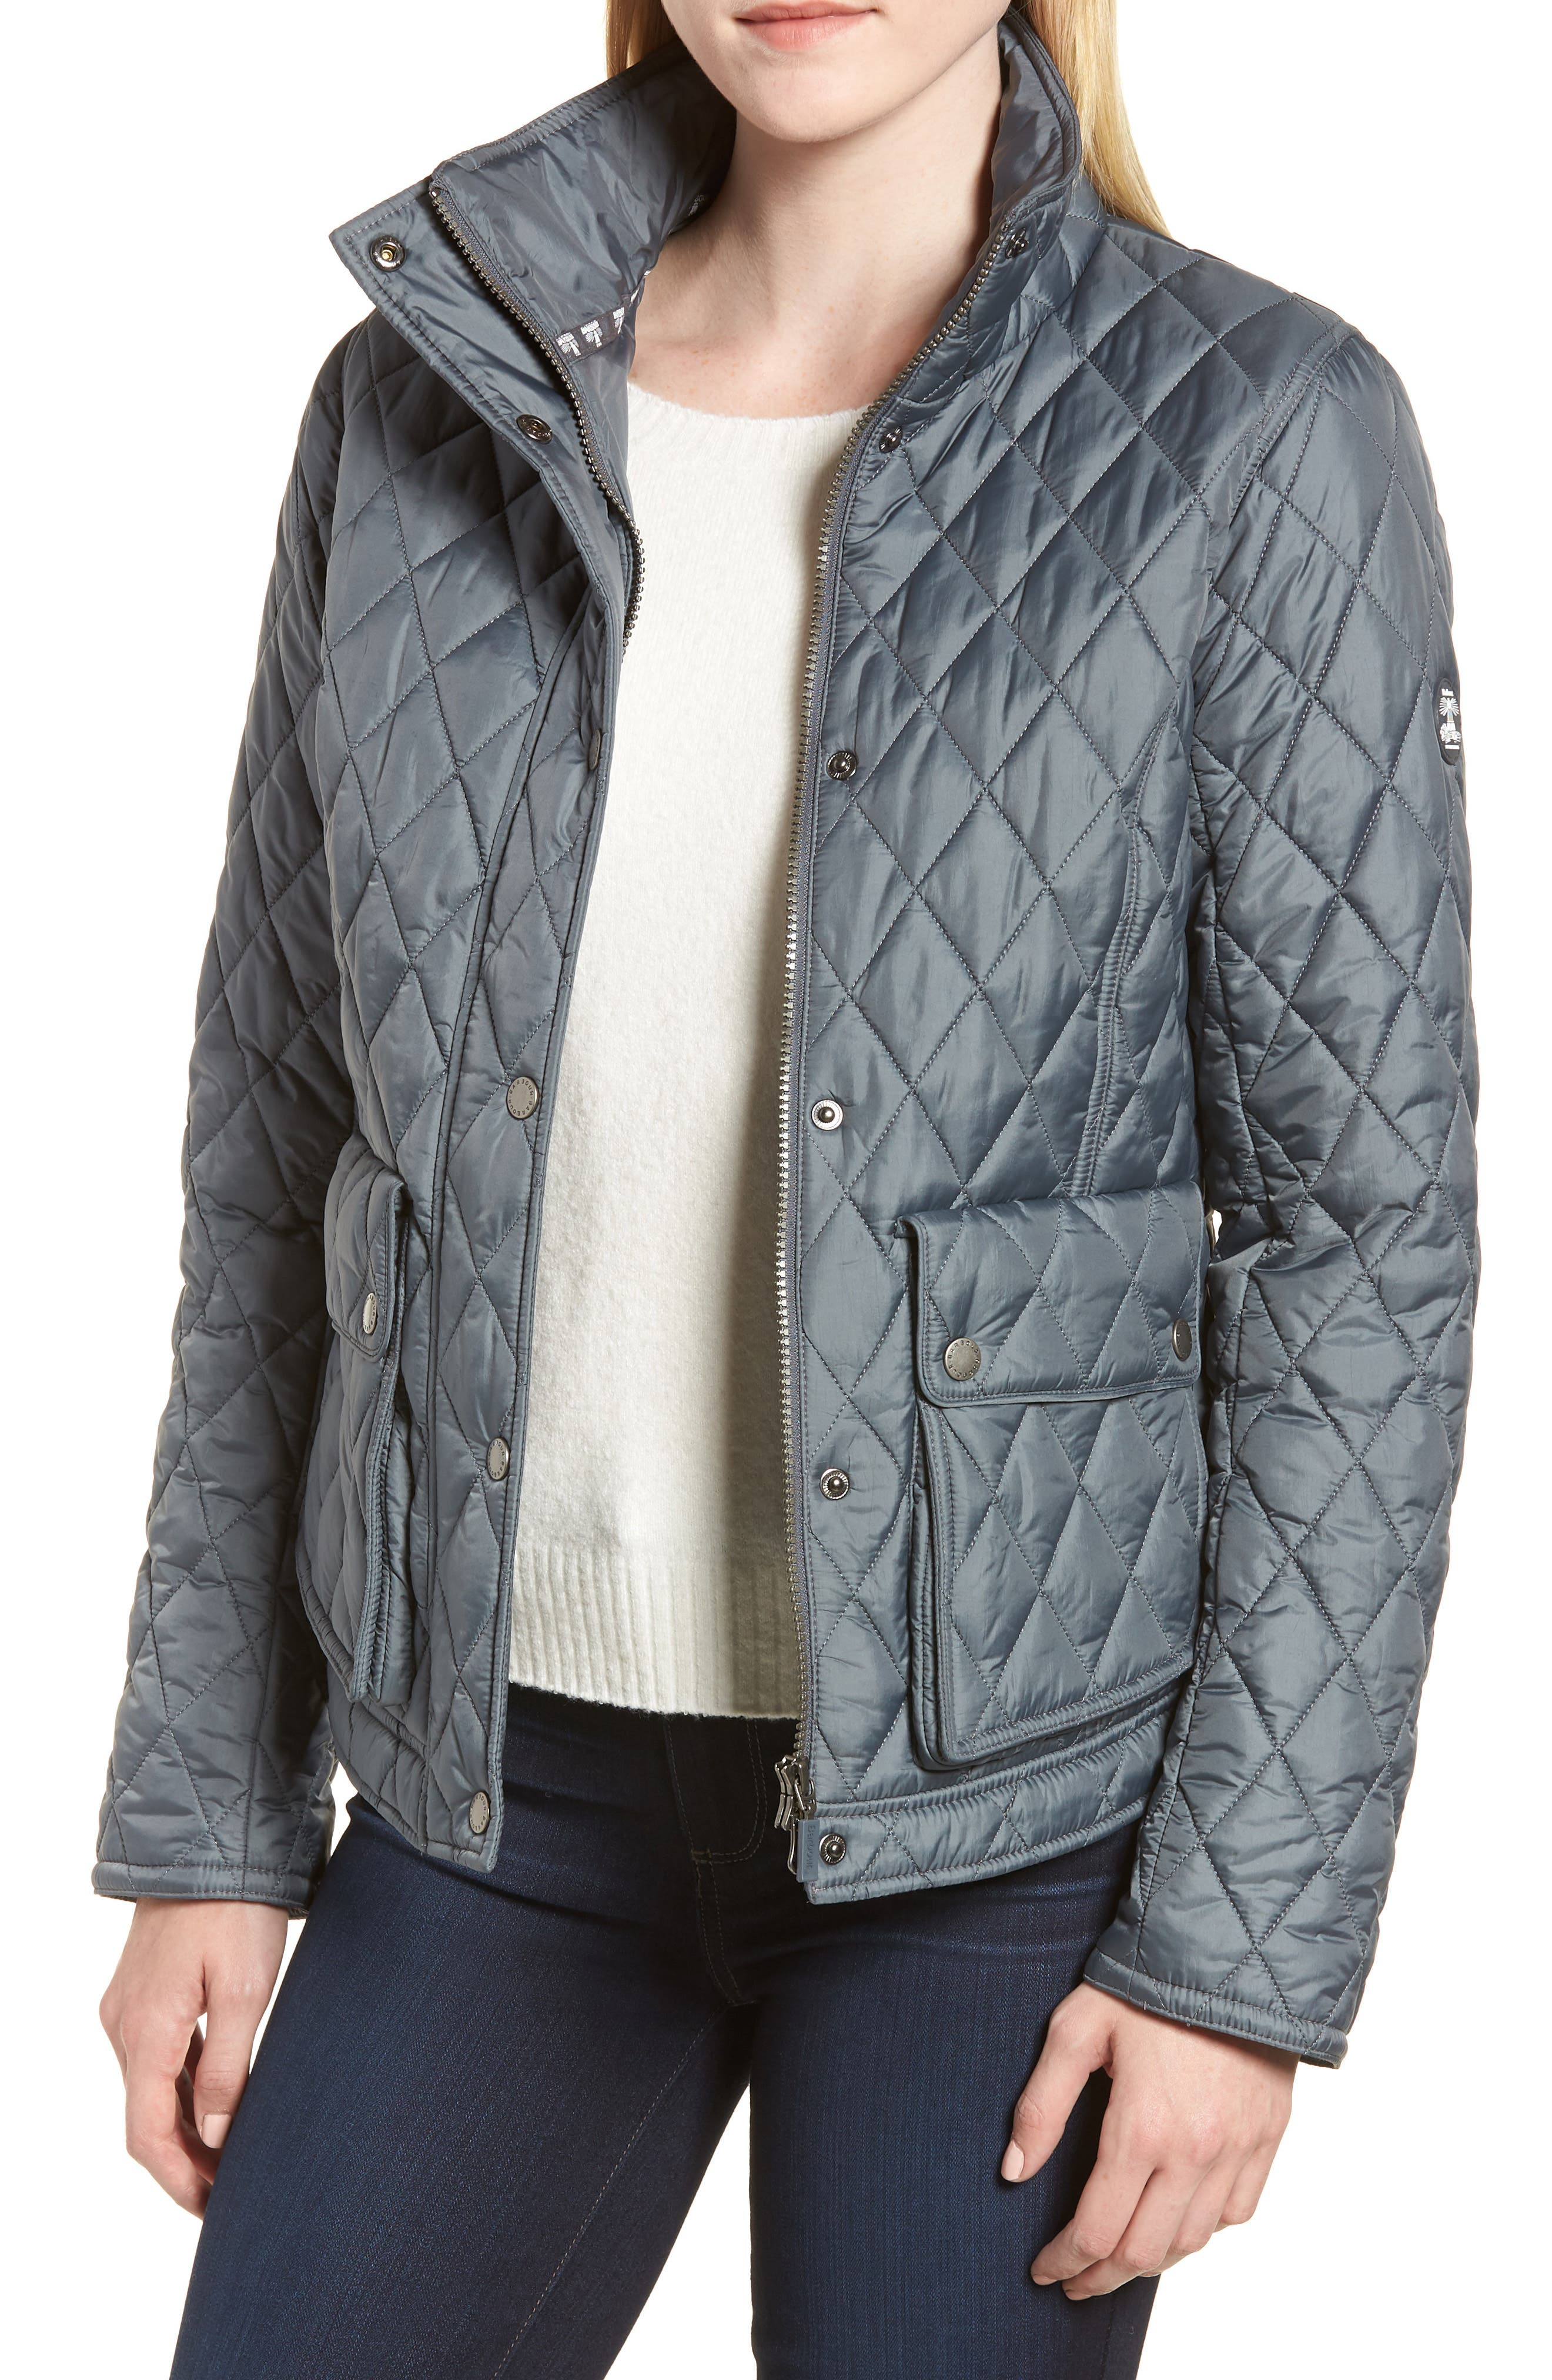 Fairway Quilted Jacket,                             Main thumbnail 1, color,                             Washed Charcoal